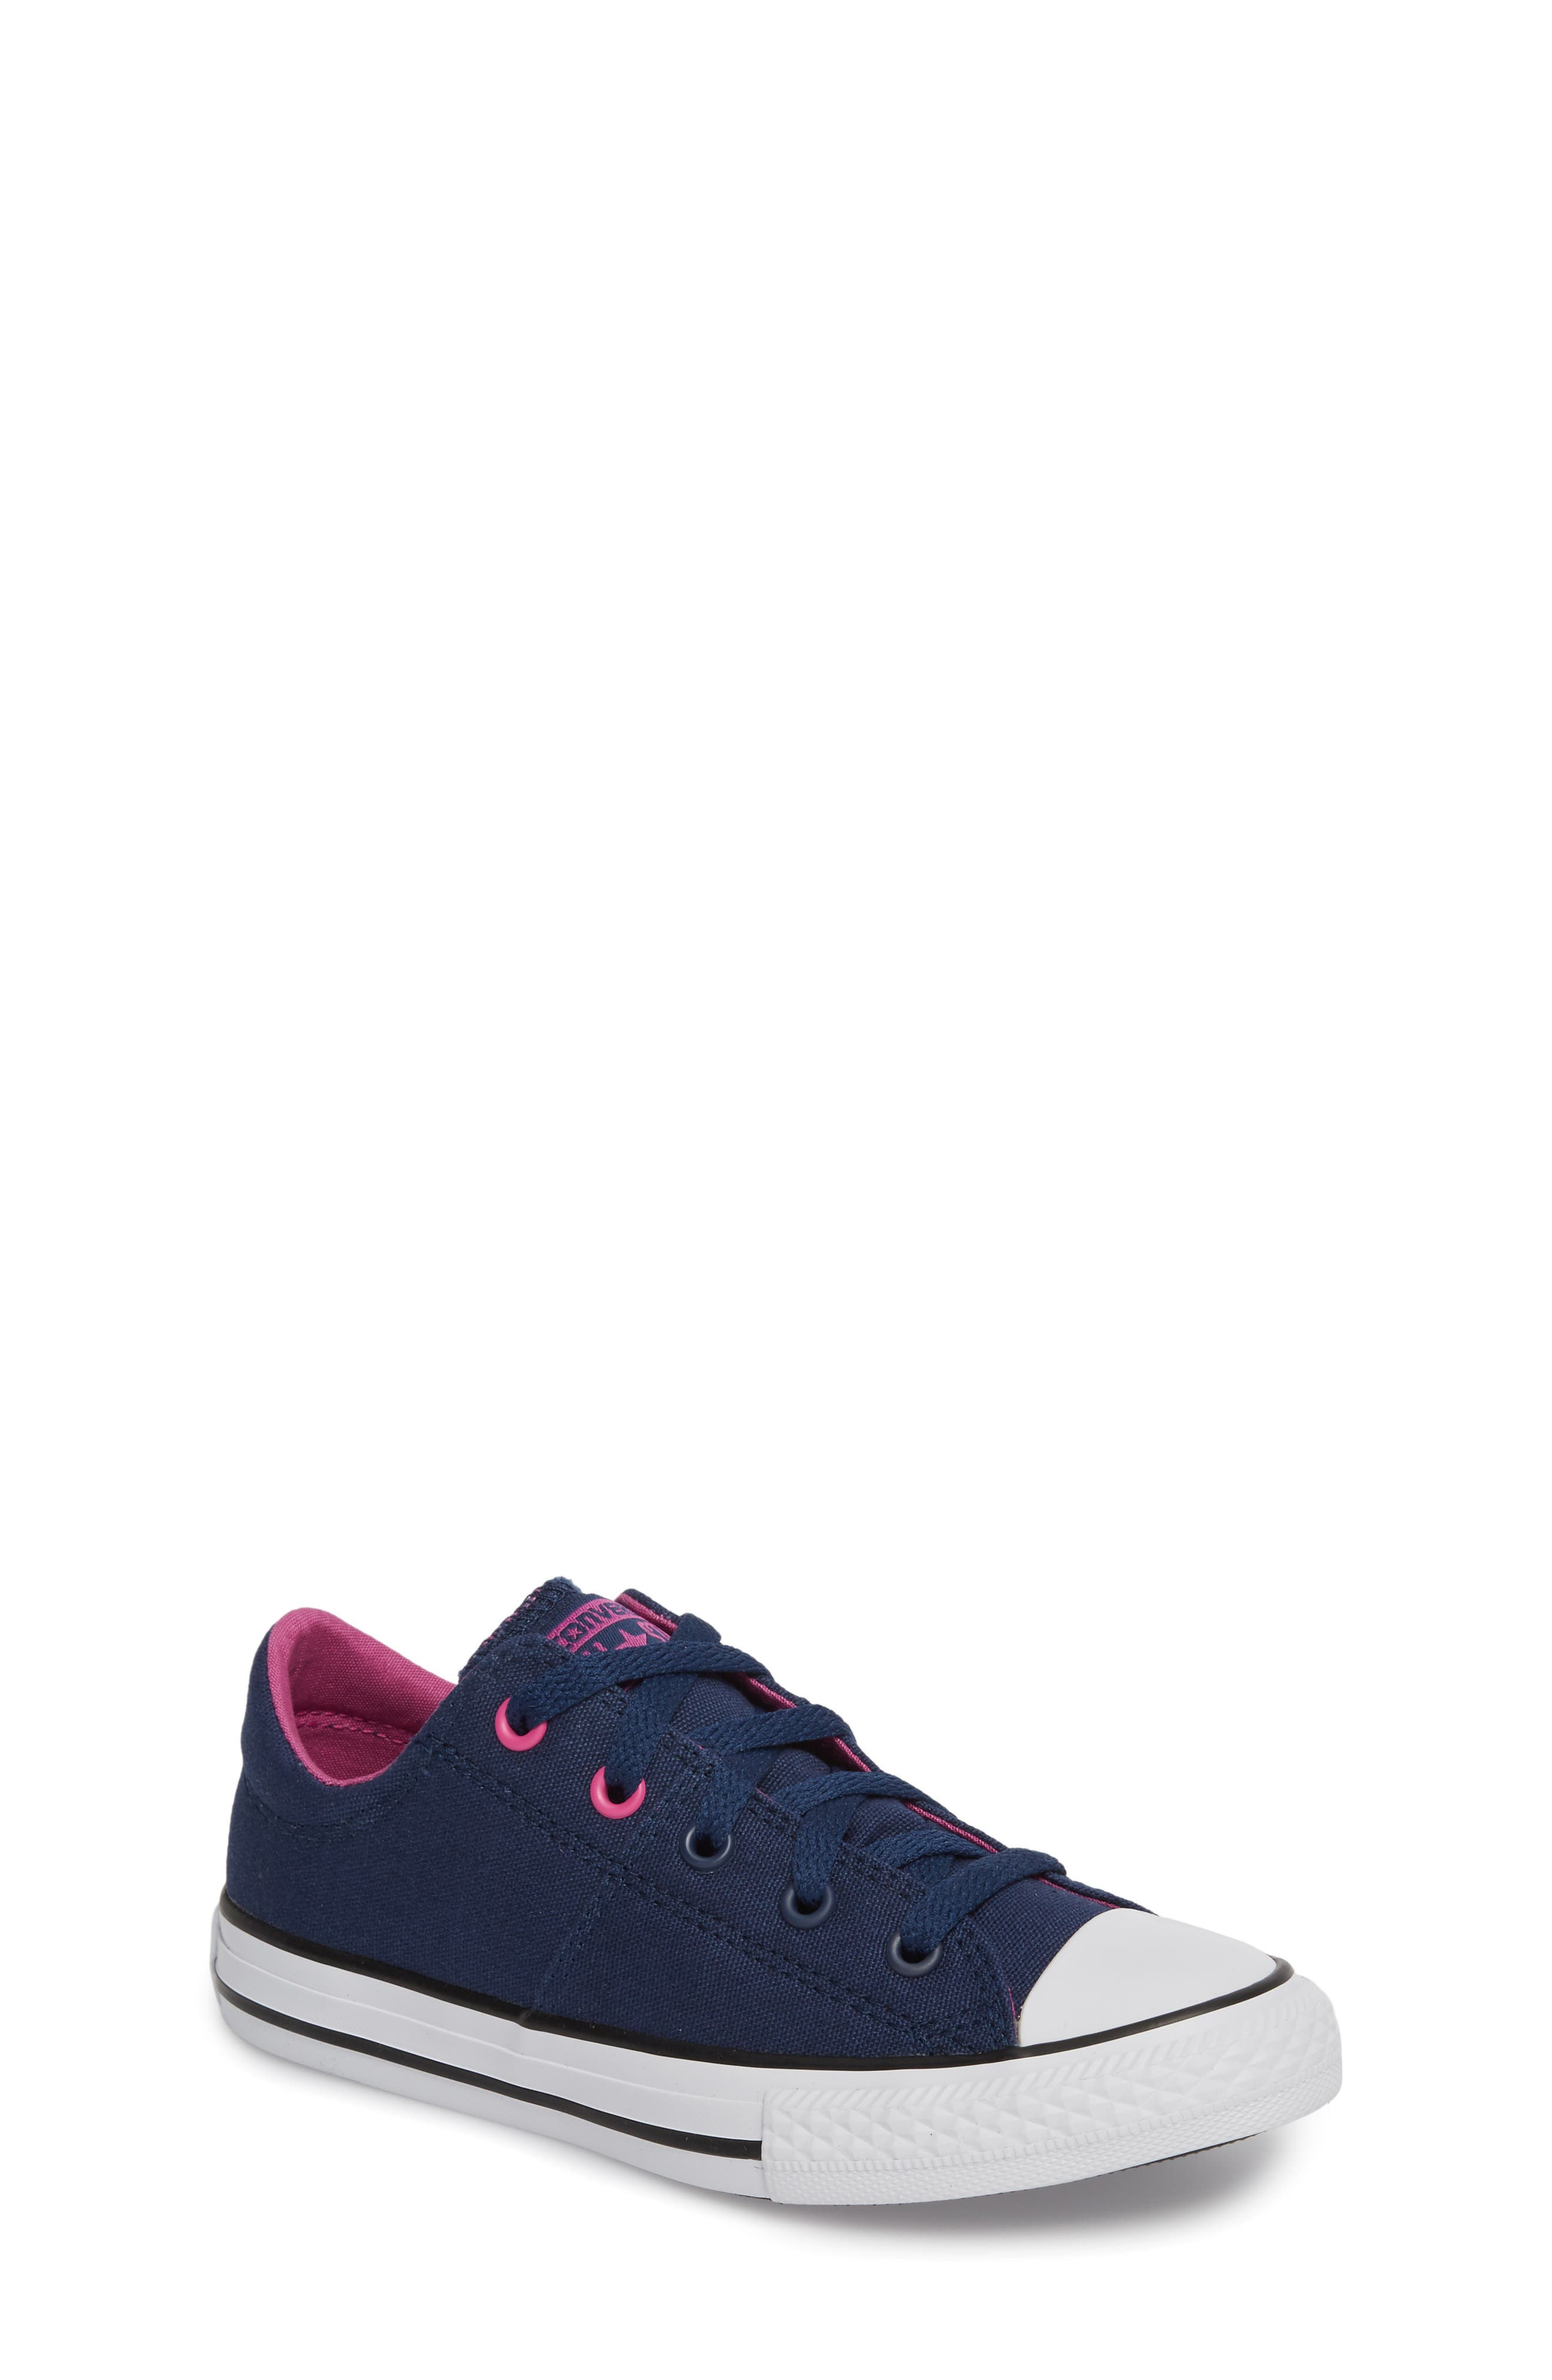 Main Image - Converse Chuck Taylor® All Star® Madison Low Top Sneaker (Toddler, Little Kid & Big Kid)